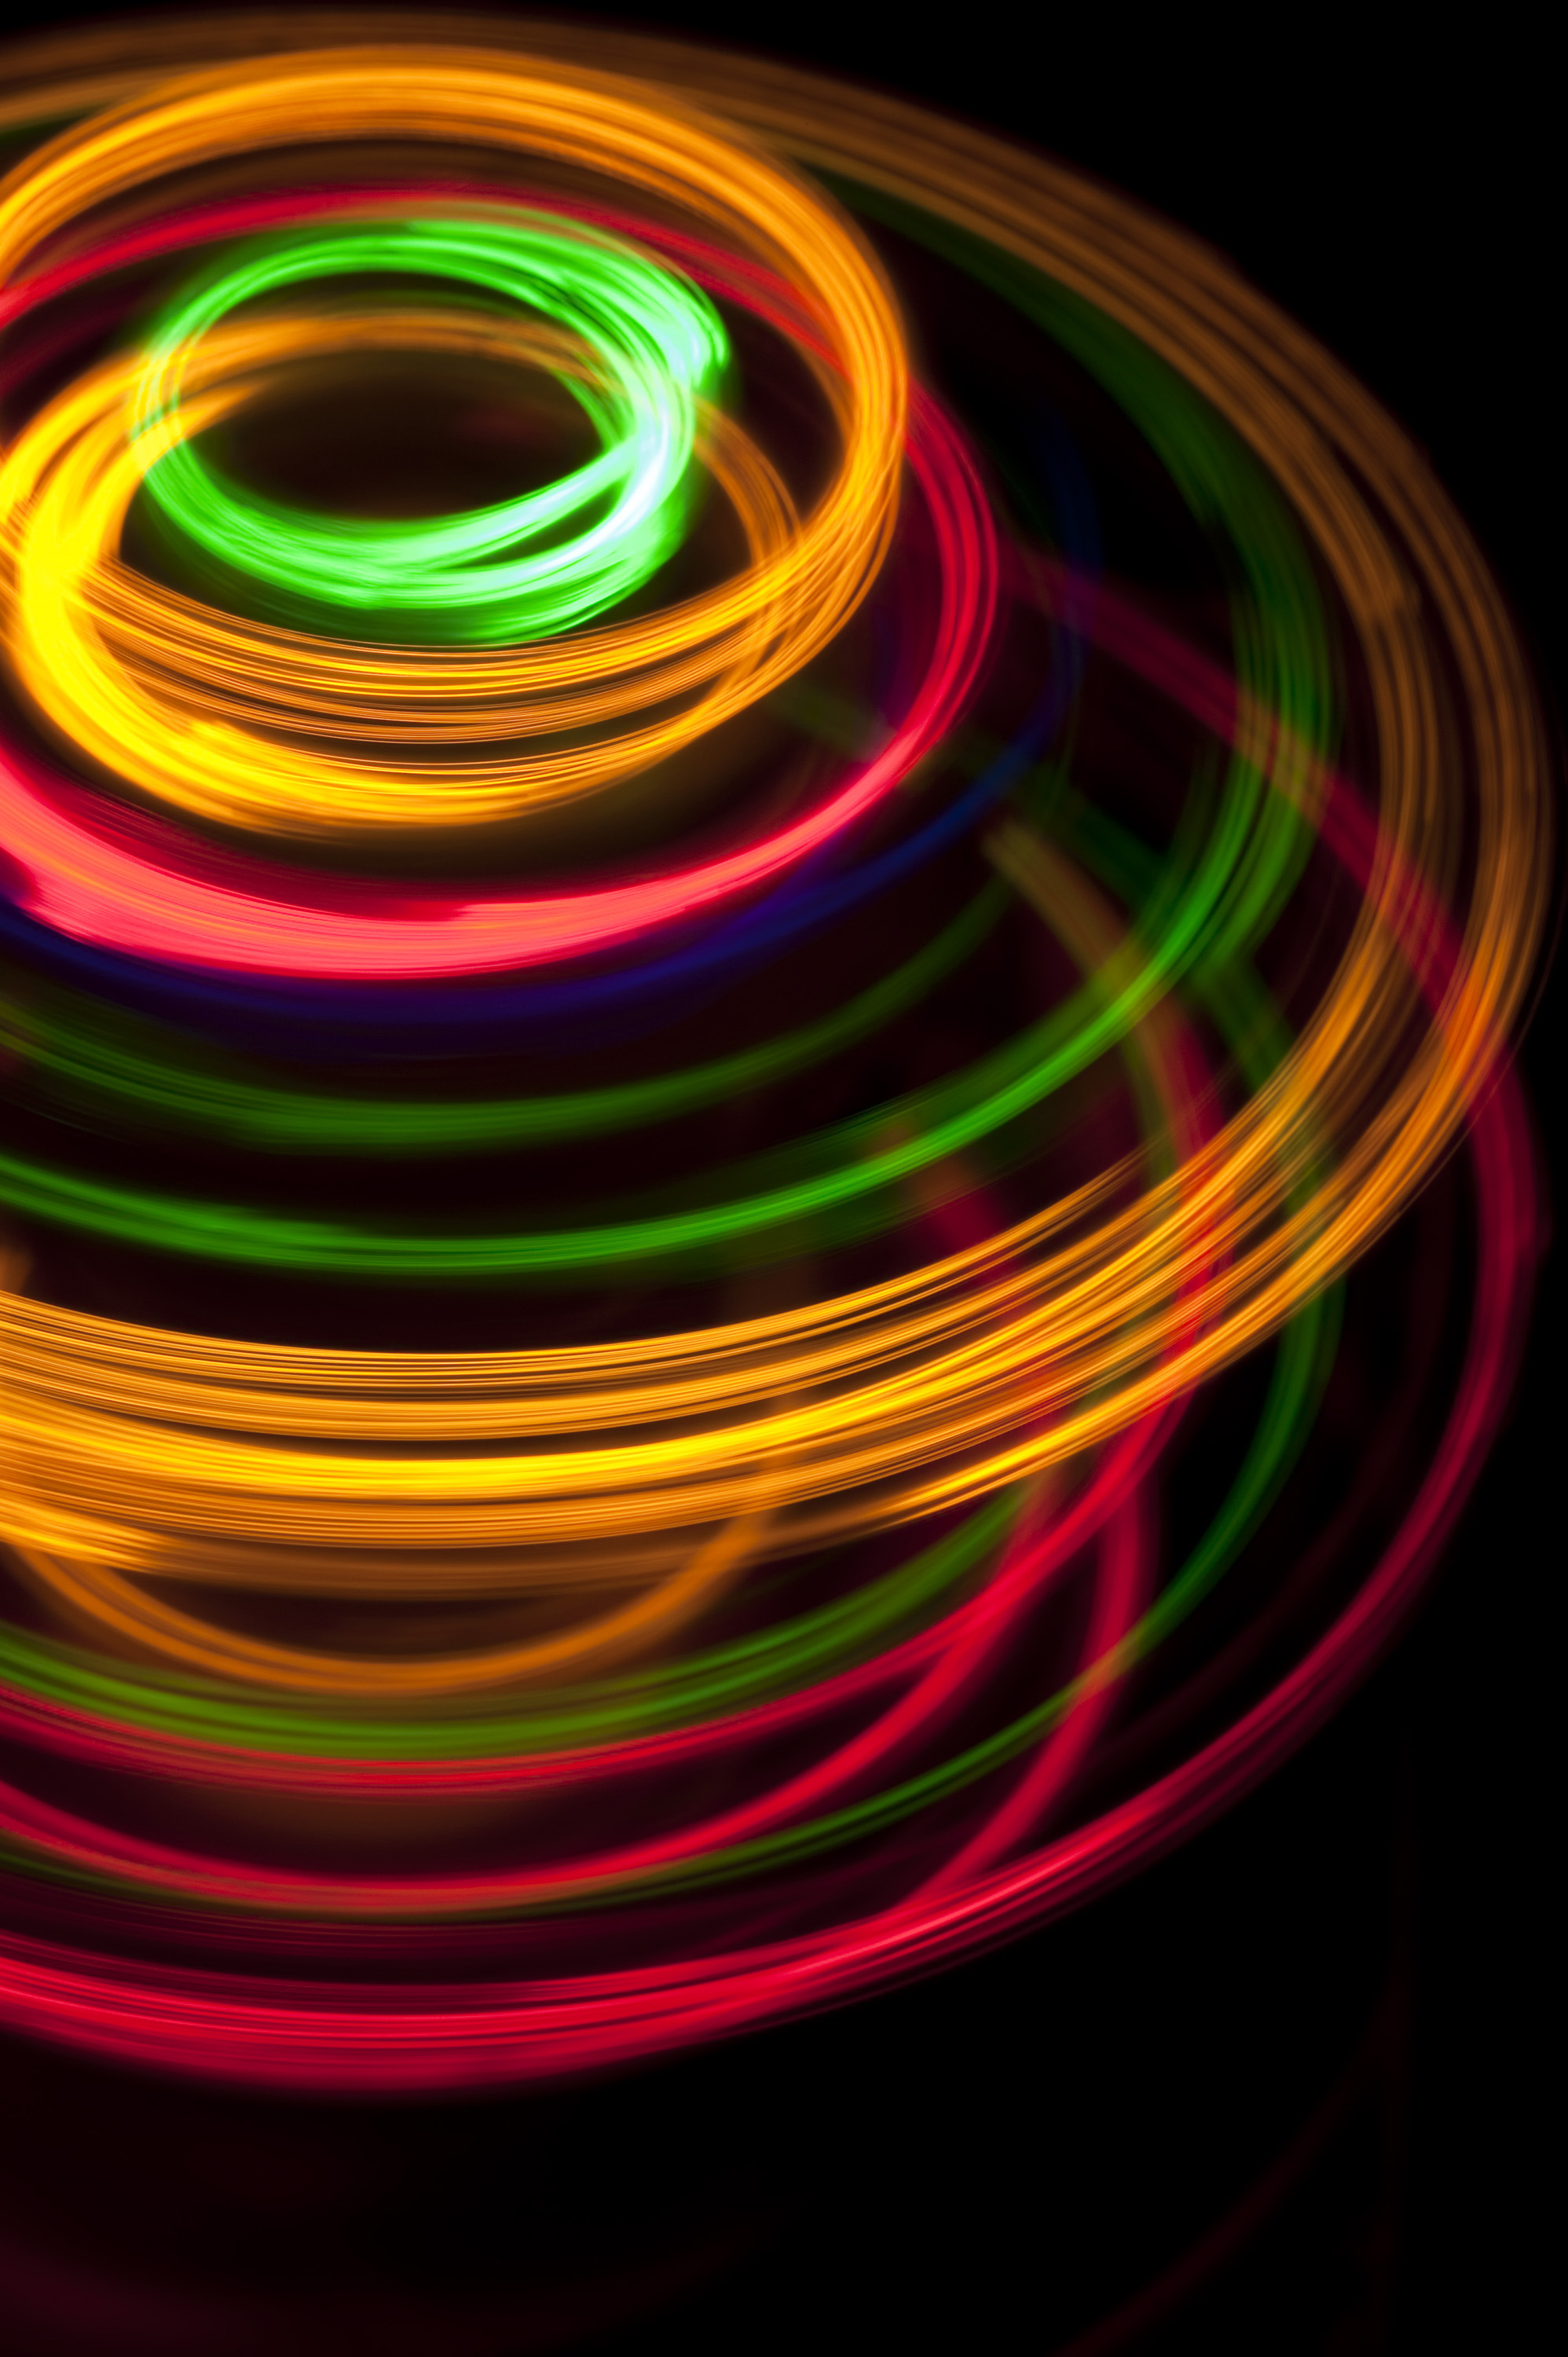 colorful spinning light effect backdrop